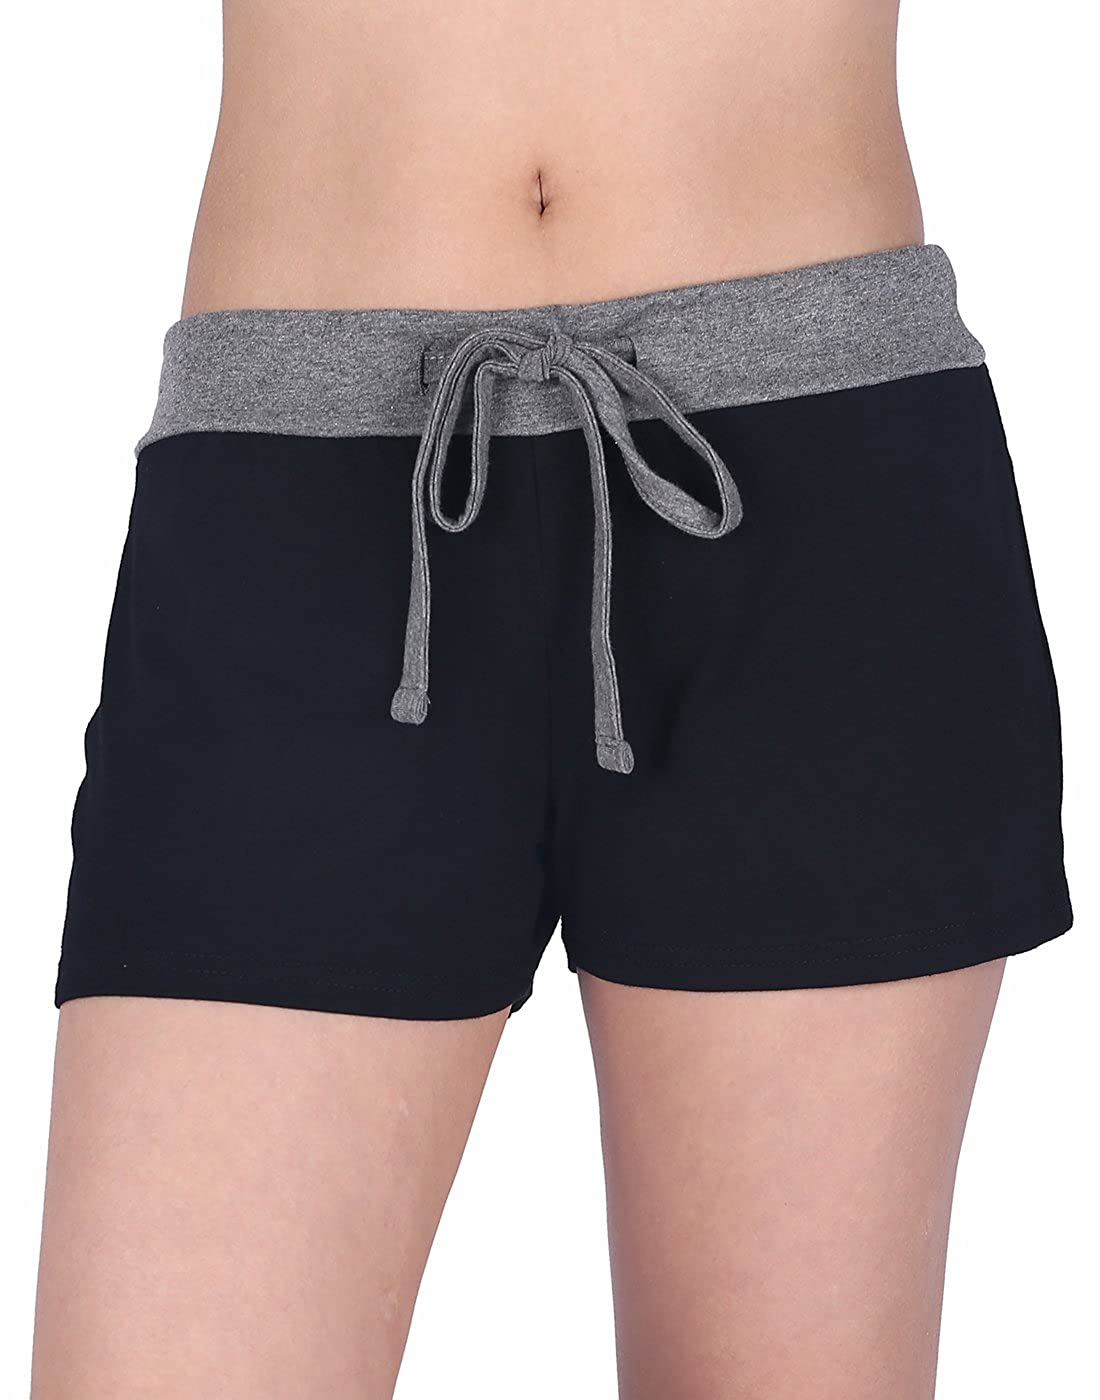 e5a5c3586c2fa9 Top 10 wholesale Juniors Sleep Shorts - Chinabrands.com